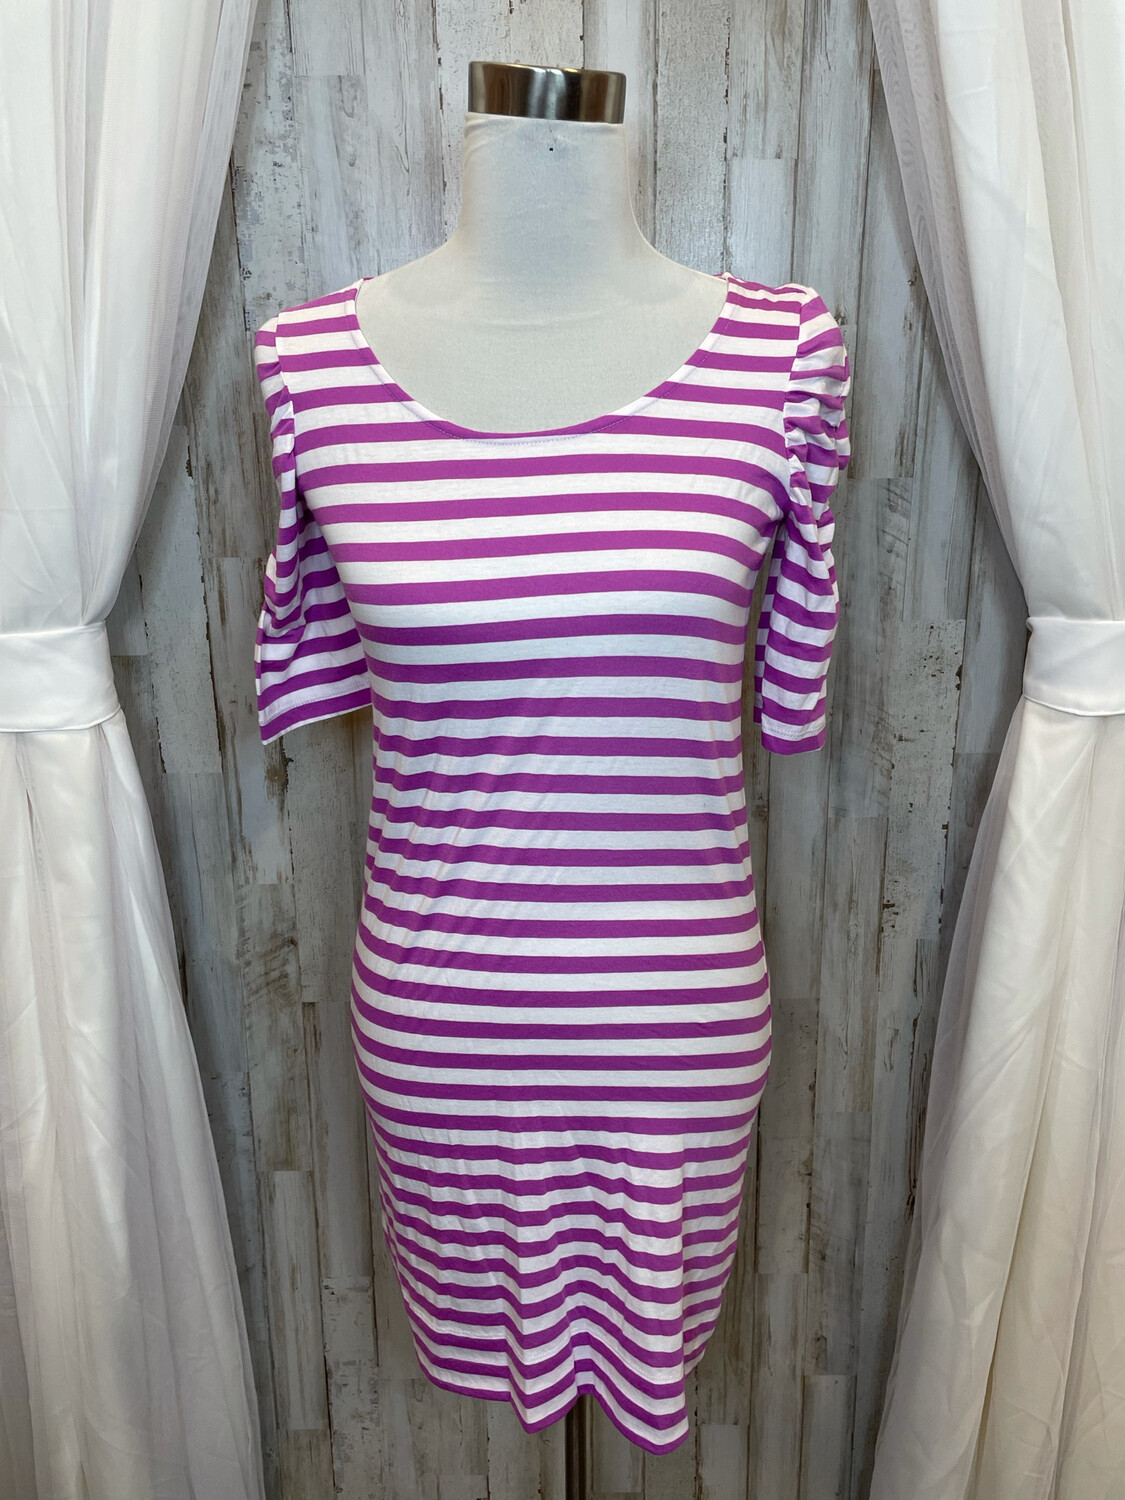 Lilly Pulitzer Purple & White Striped Casual Dress - S